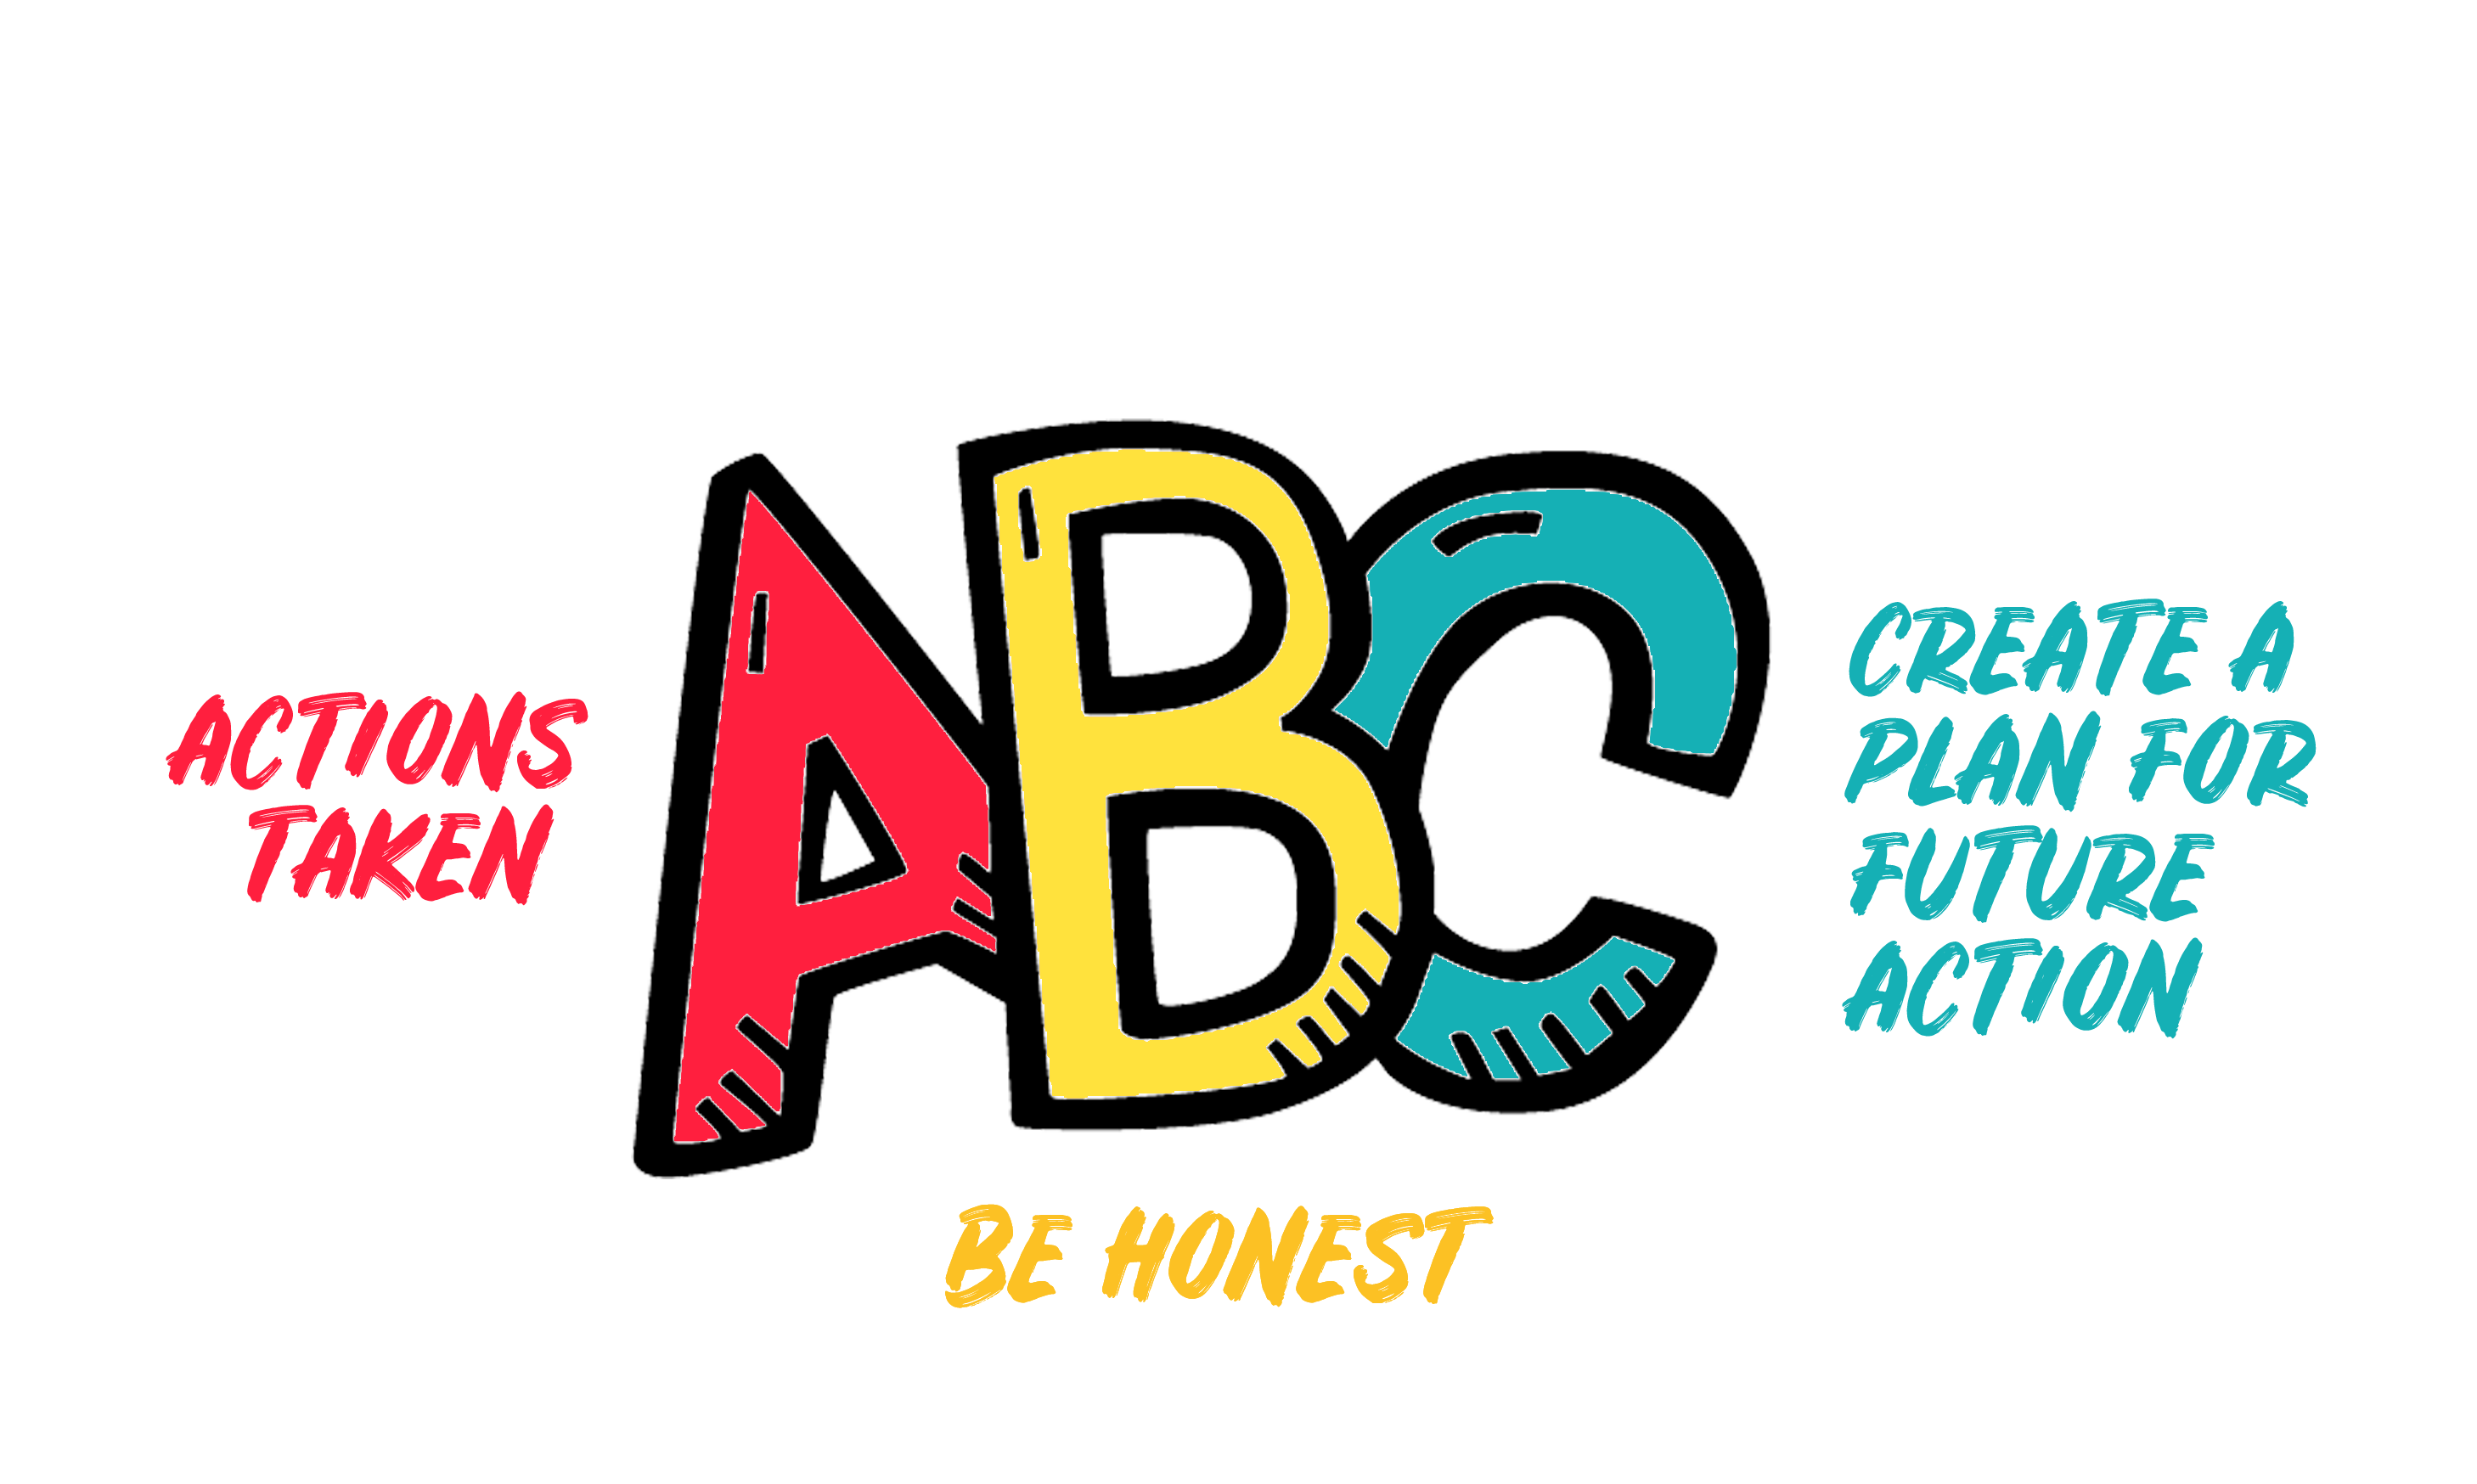 ABC Method: Actions taken, Be honest, Create a plan for future action